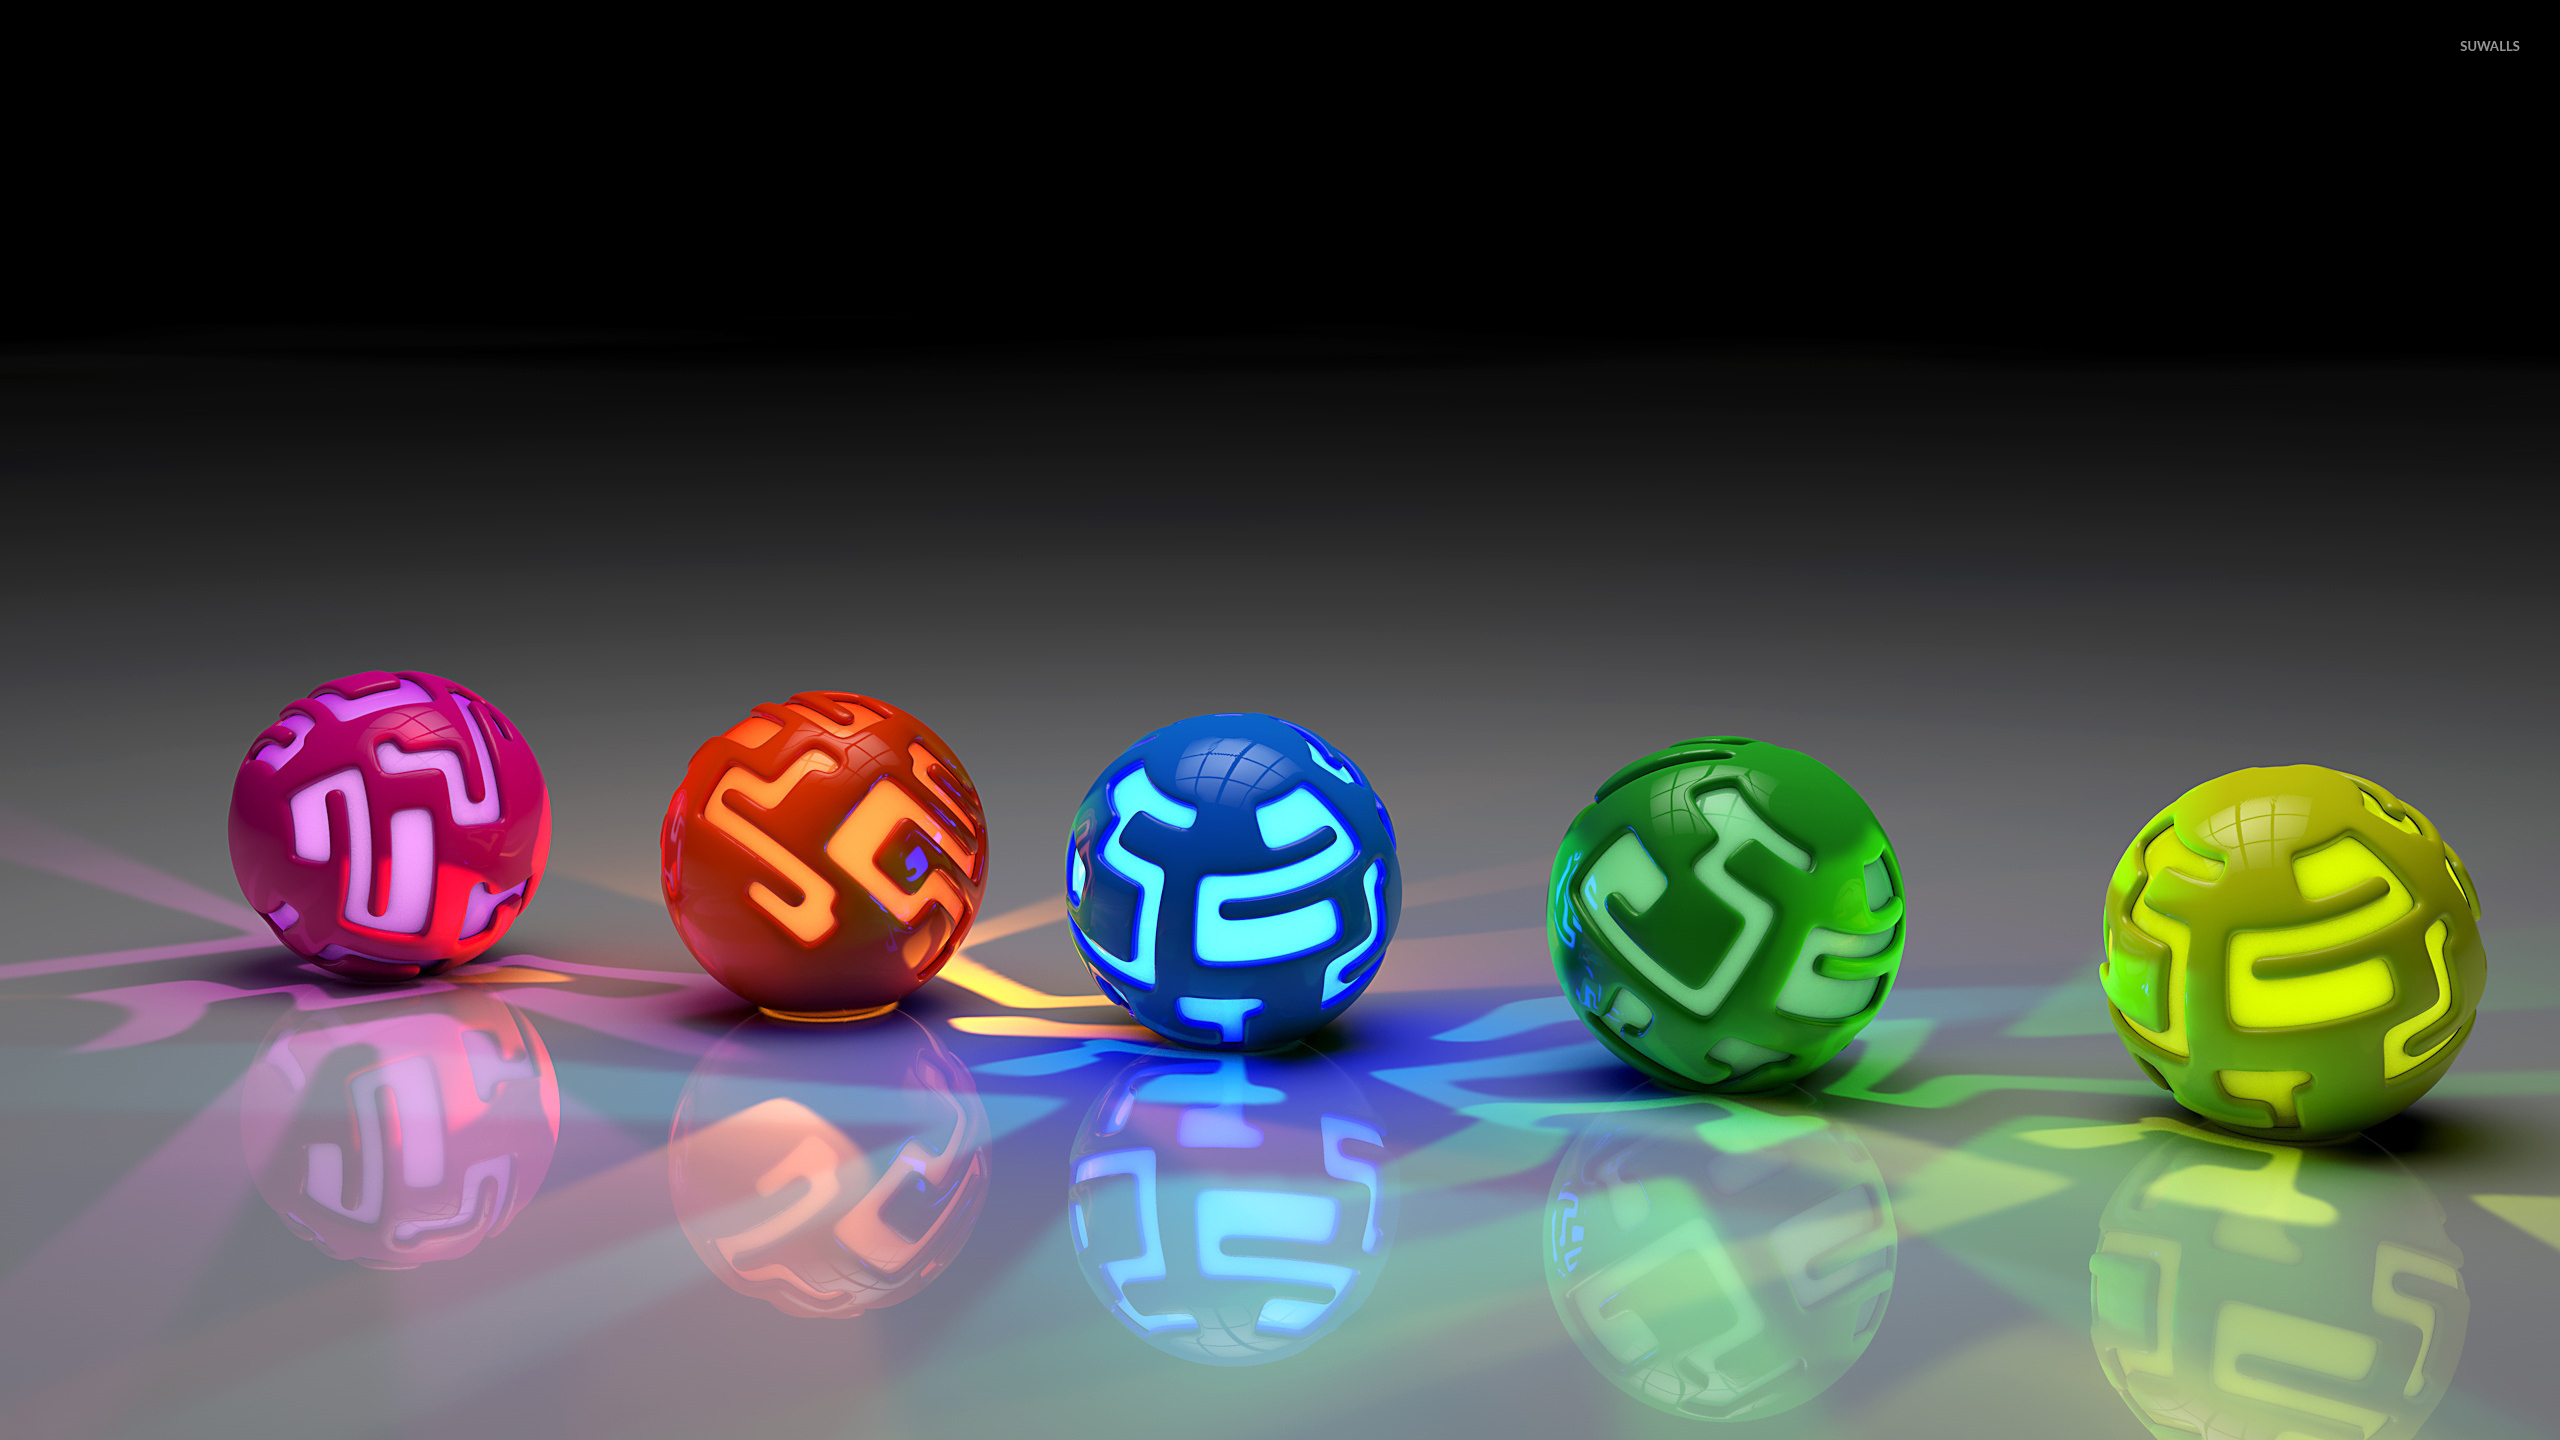 Colorful Lit Orbs On The Ground Wallpaper 3d Wallpapers HD Wallpapers Download Free Images Wallpaper [1000image.com]